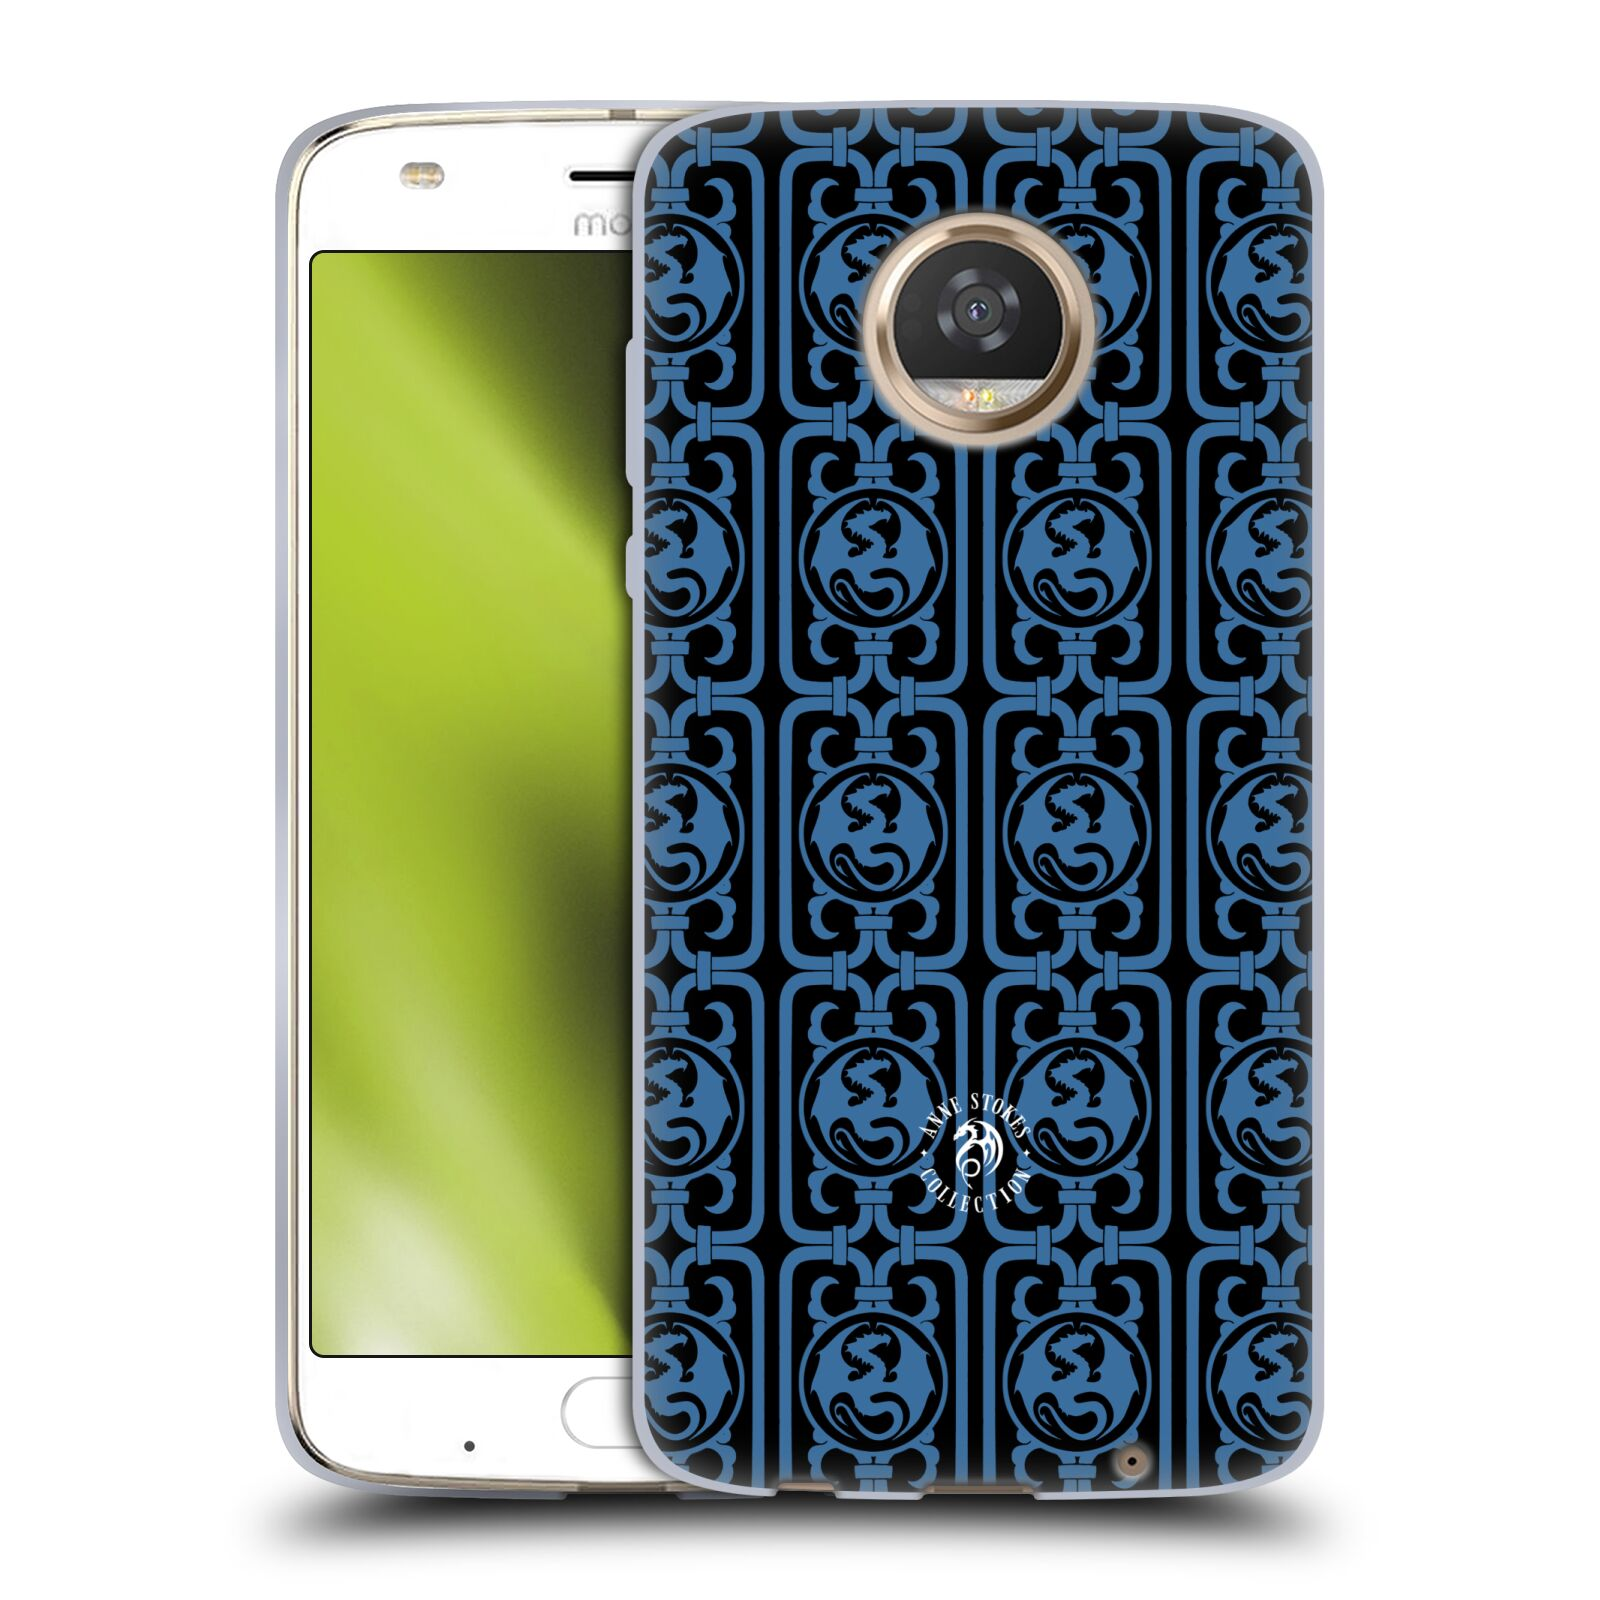 OFFICIAL-ANNE-STOKES-ORNAMENTS-SOFT-GEL-CASE-FOR-MOTOROLA-PHONES